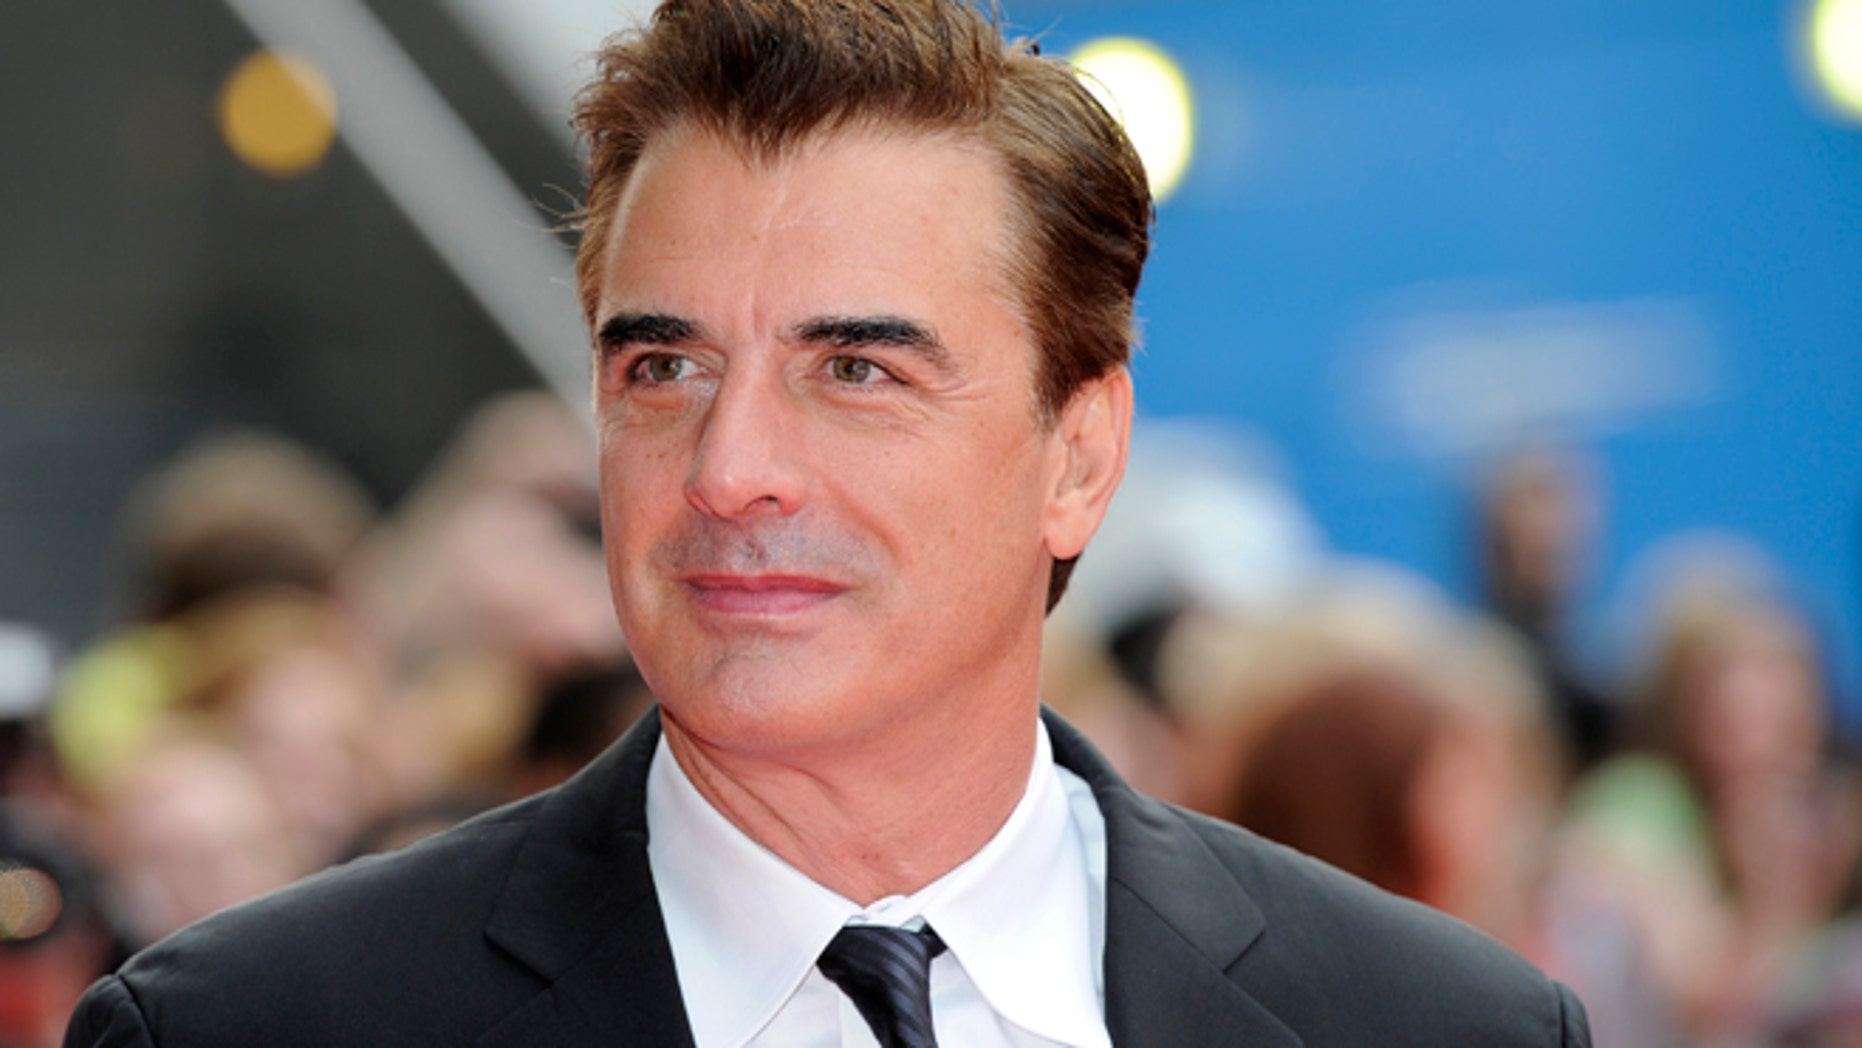 Chris Noth arrives for the National Movie Awards at the Royal Festival Hall in London May 26, 2010.